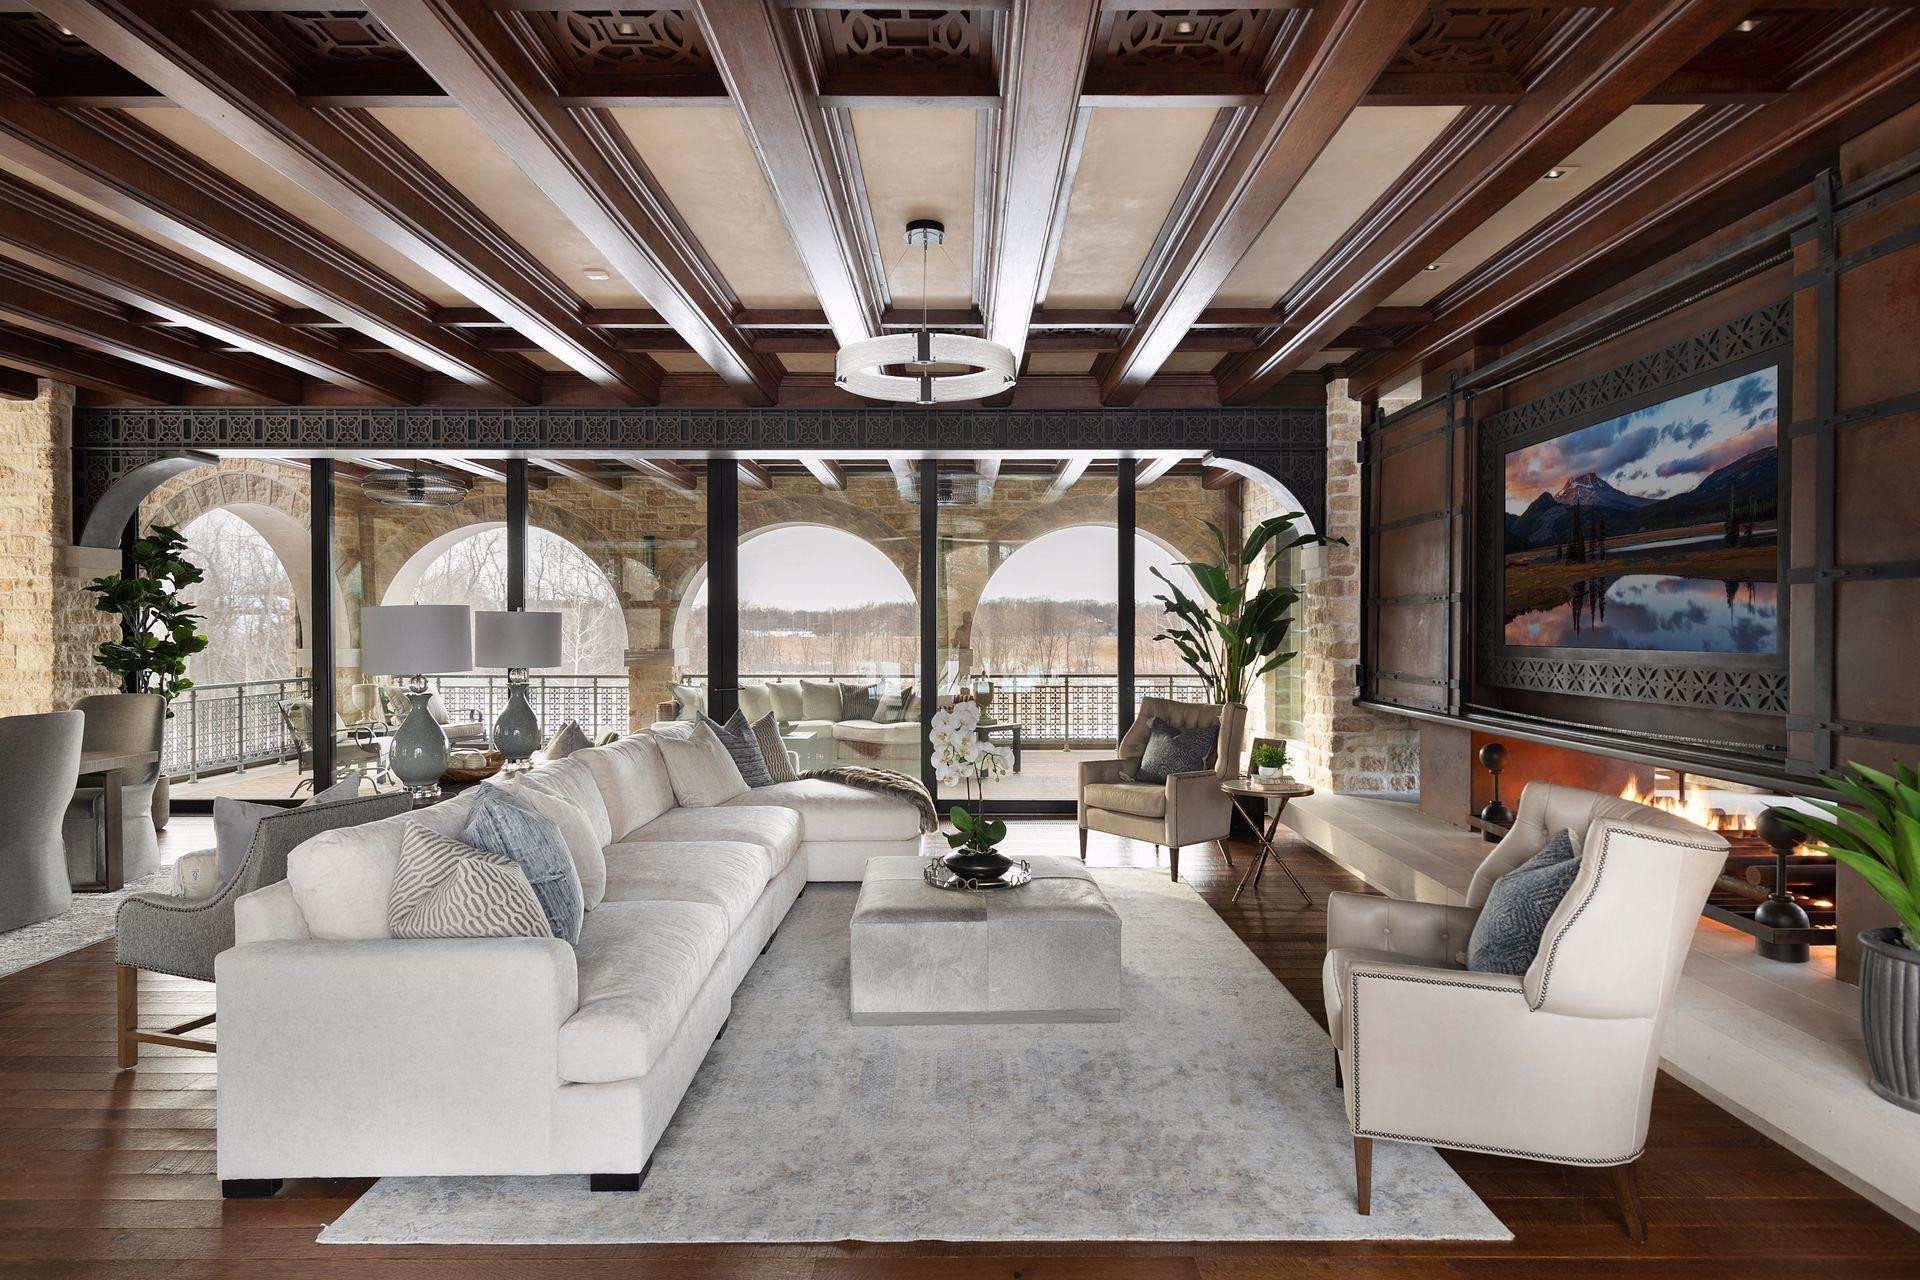 The great room features a custom designed entertainment center with fireplace and walls of glass opening to two stone arched terraces.